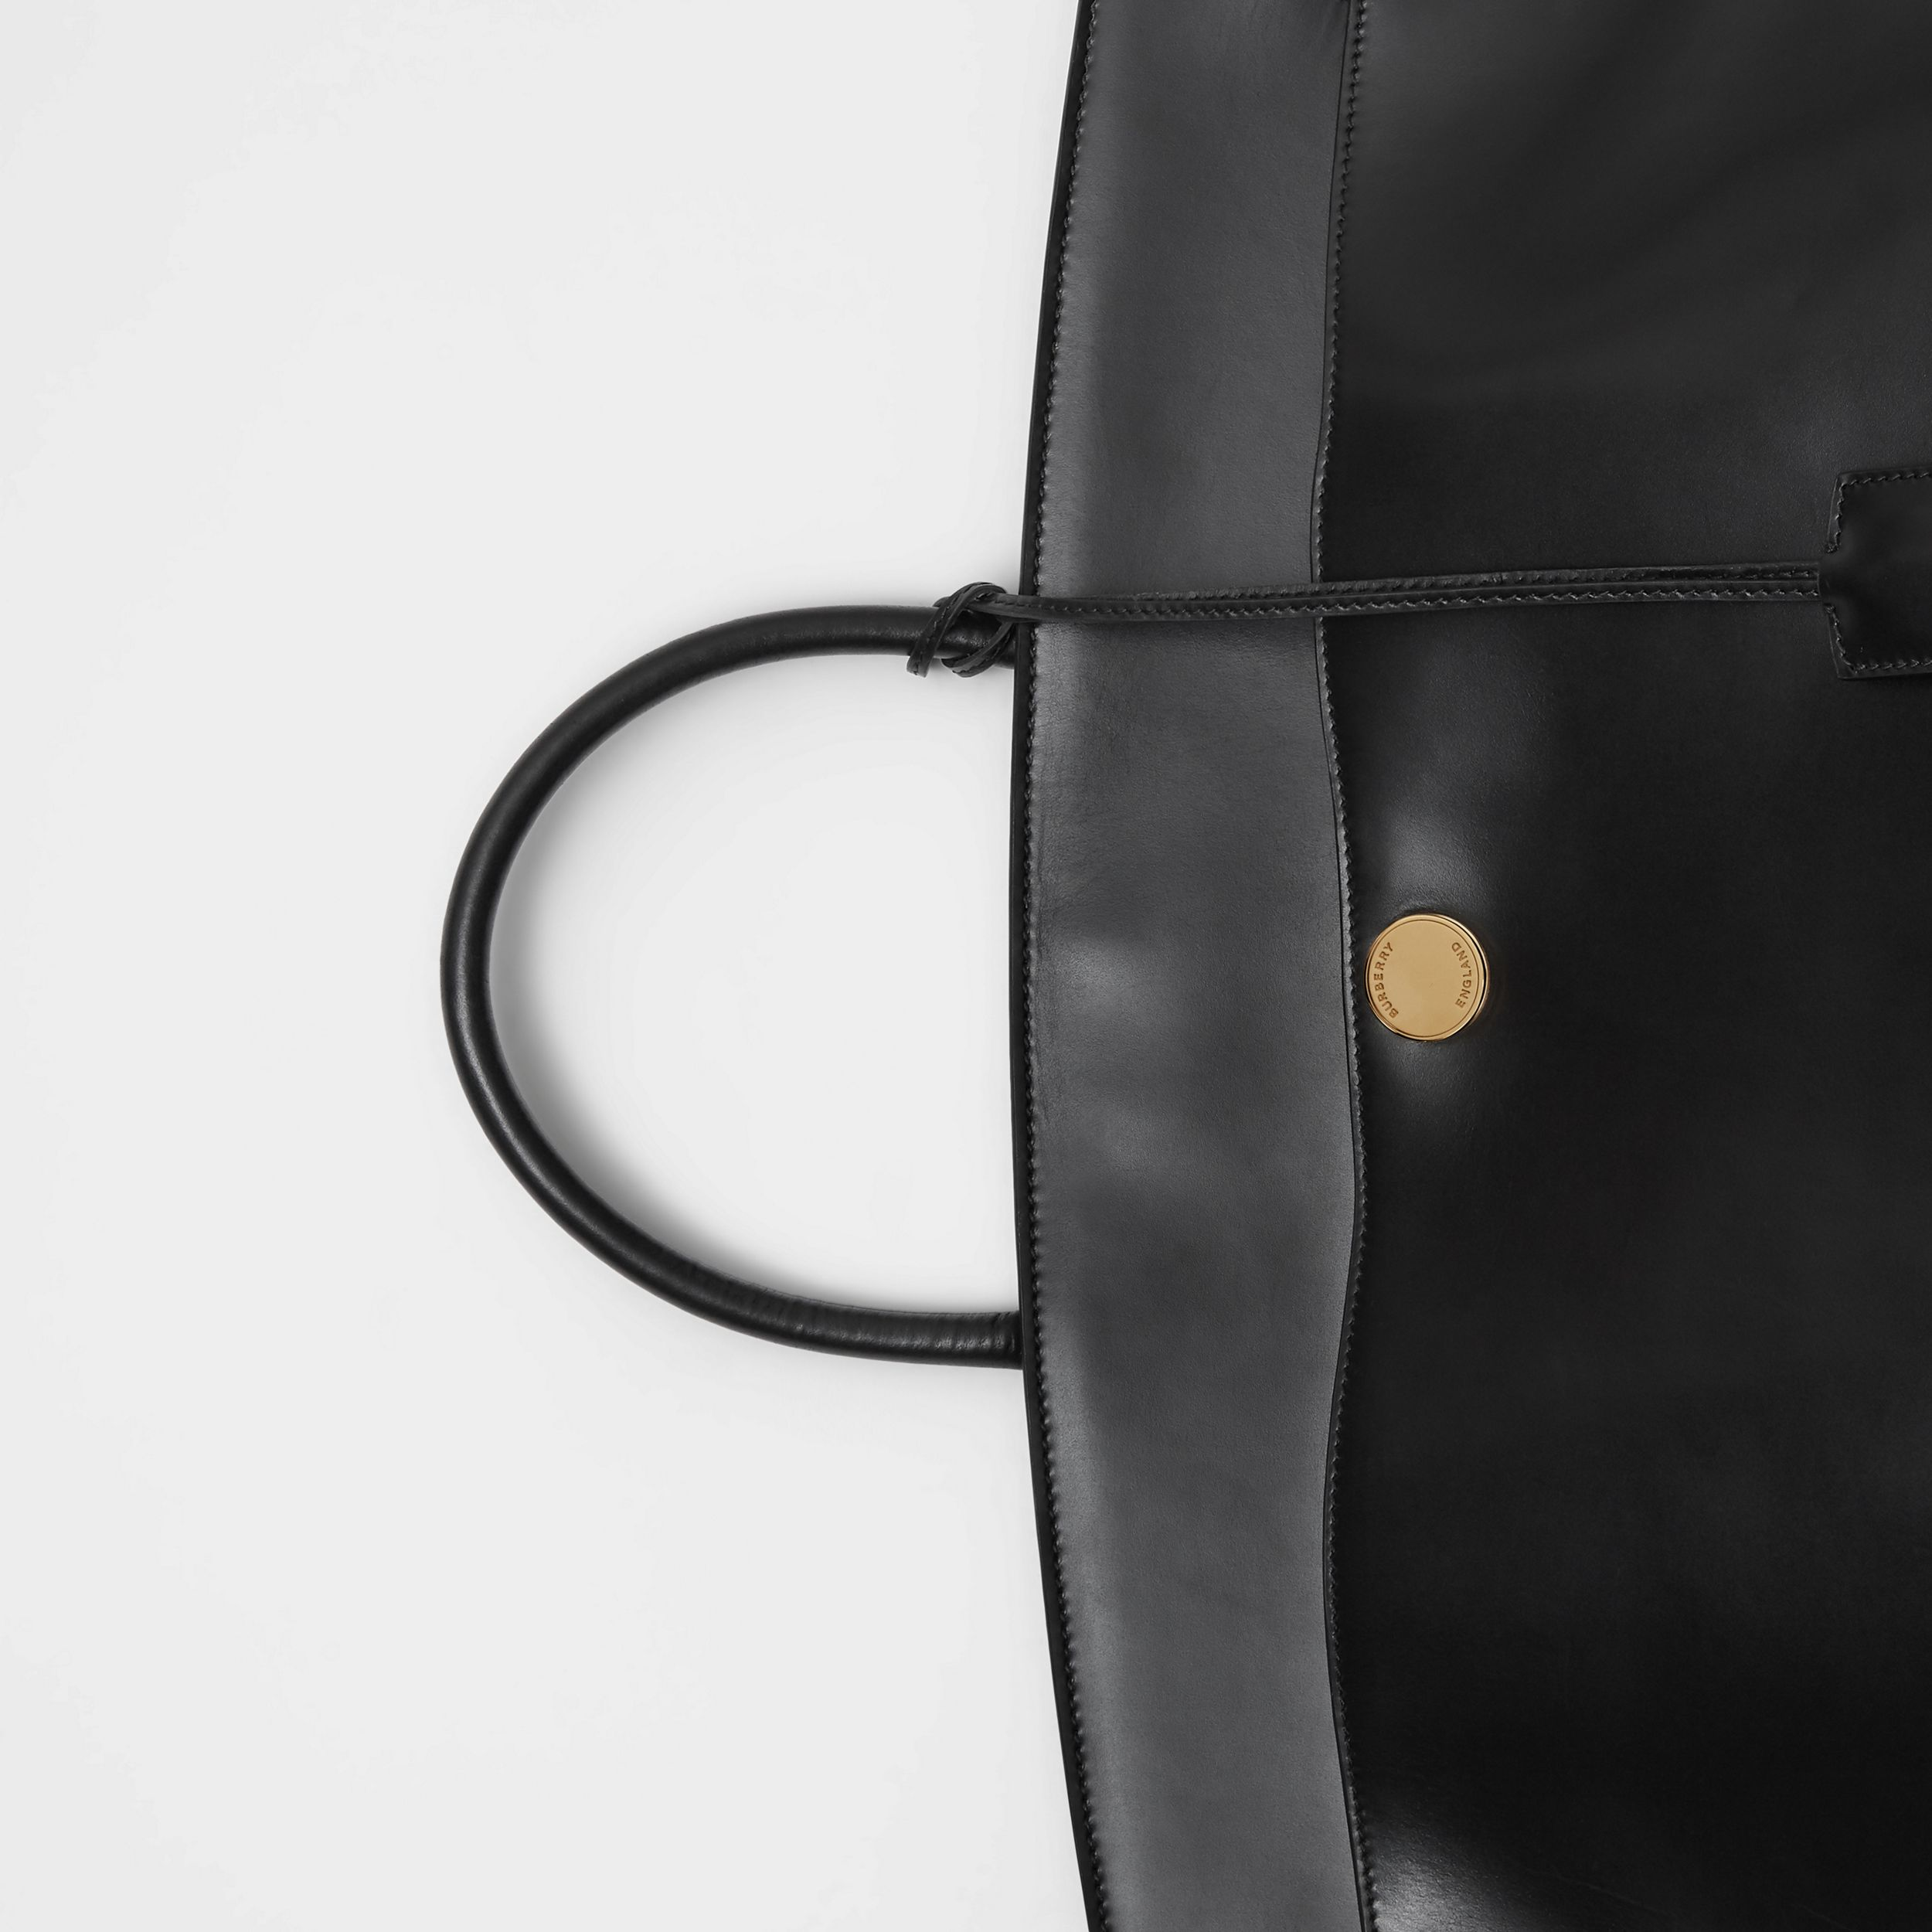 Leather Society Top Handle Bag in Black - Women | Burberry - 2